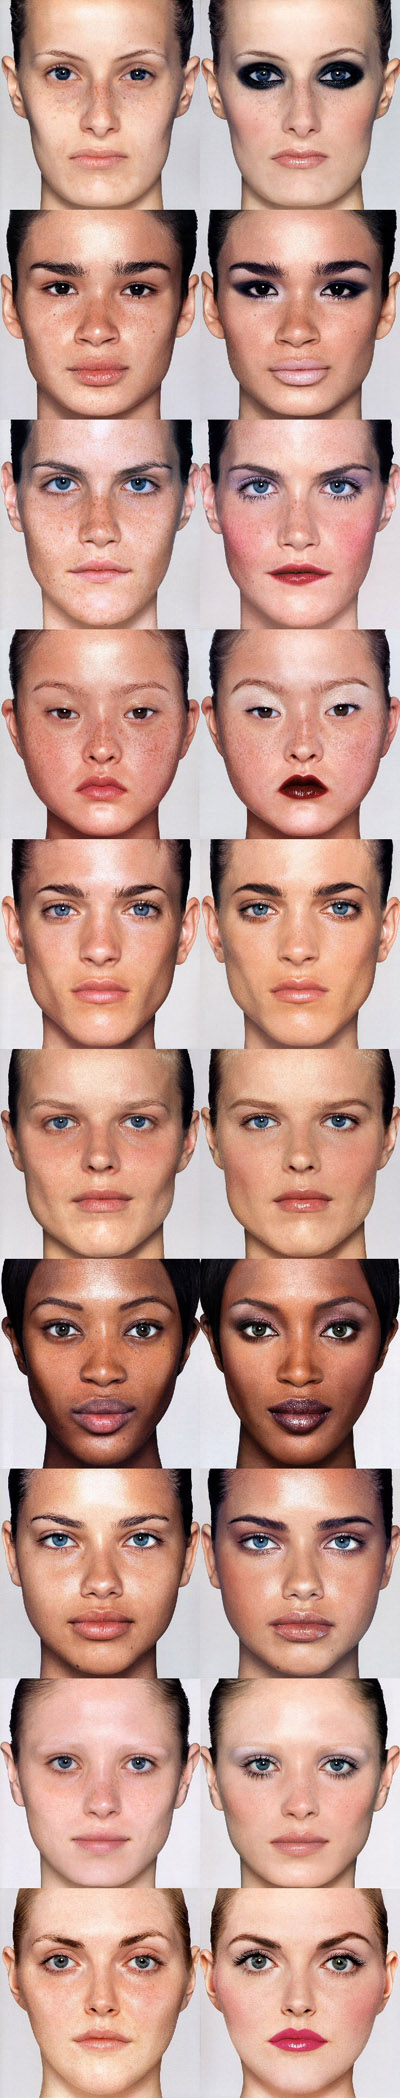 Fashion models with and without make-up; Rhea Henderson, Caroline Ribiero, Missy Rayder, Devon Aoki, Emily Sandberg, Eva Herziogova, Naomi Campbell, Adriana Lima, Yfke Sturm and Sophie Dahl